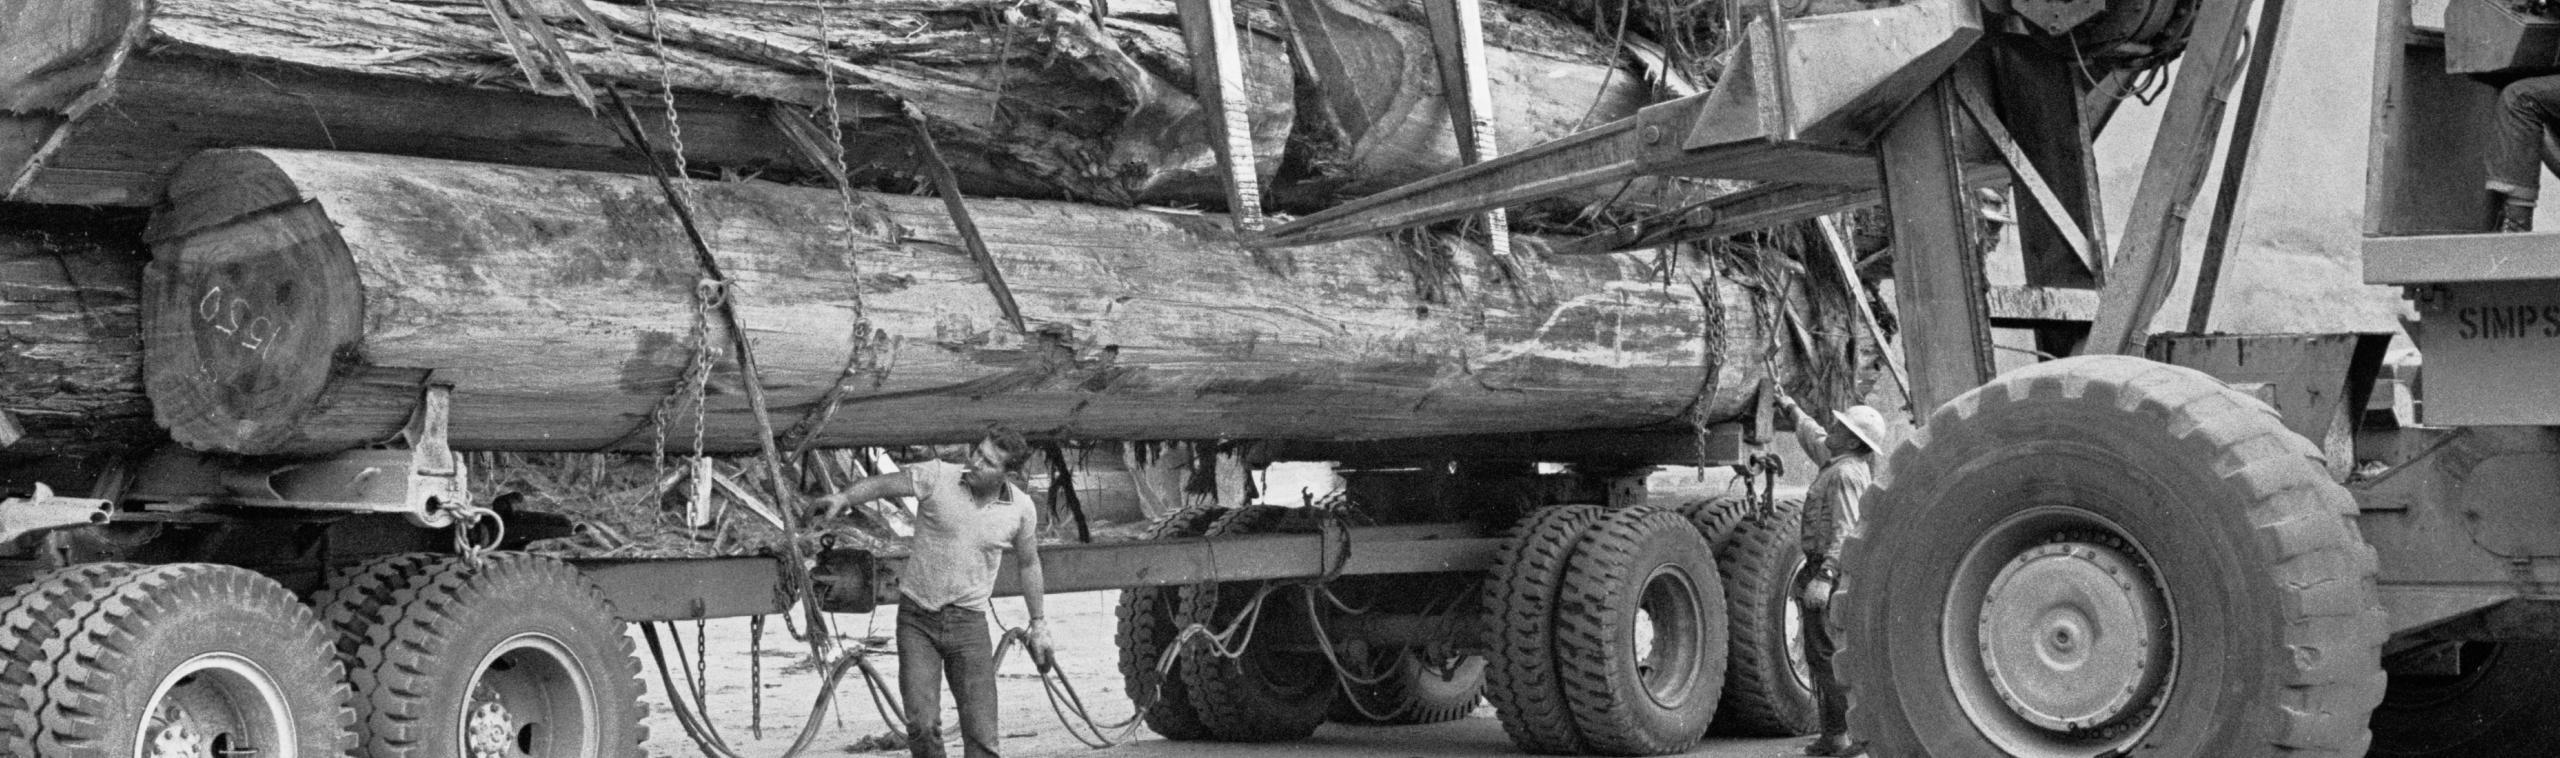 1963, Humboldt County, CA. Giant logs arriving by truck at a lumber mill.